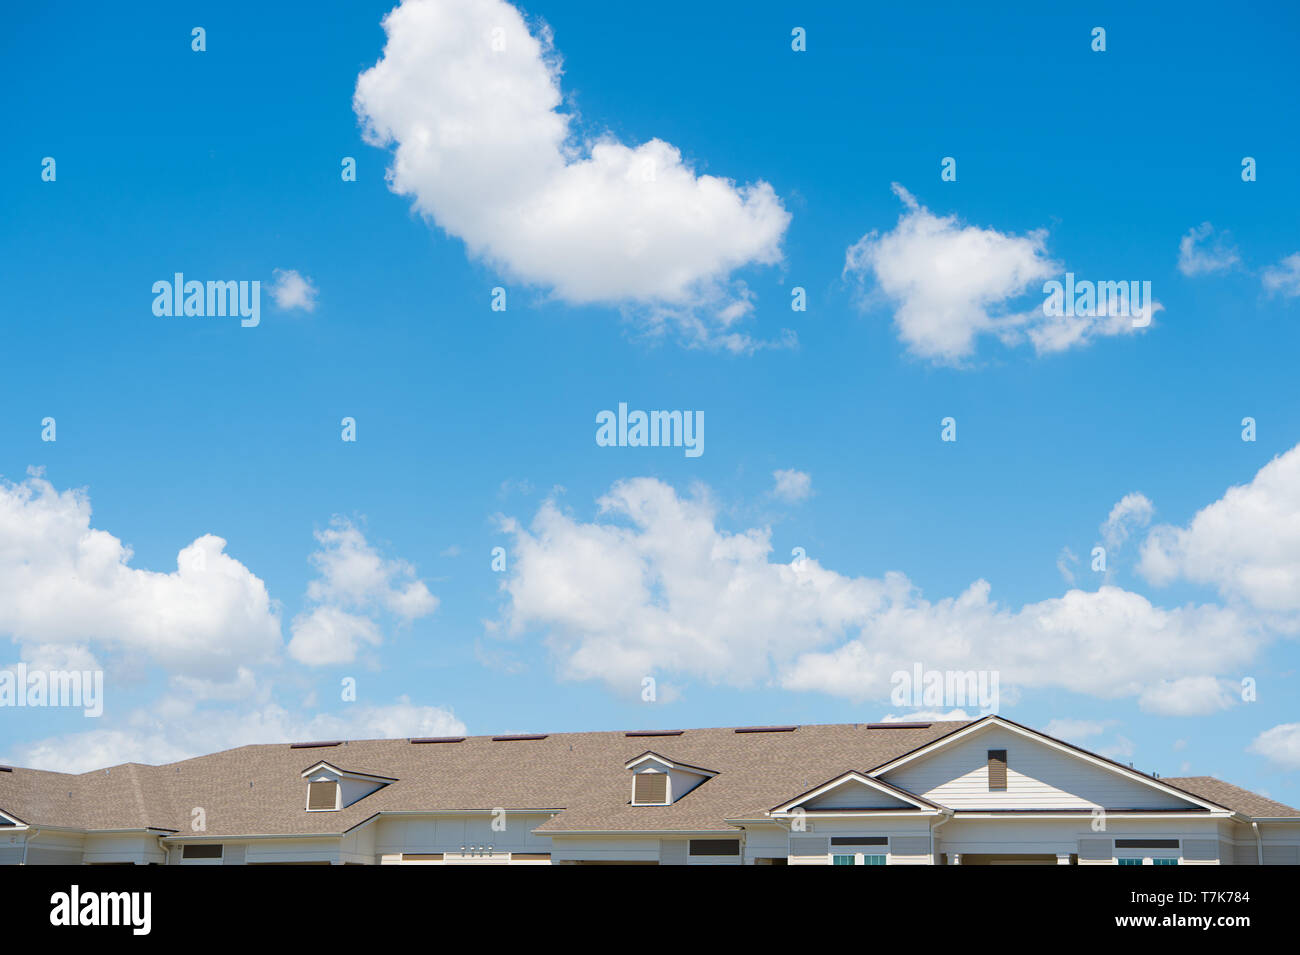 House Roof On Blue Sunny Sky Background Architecture And Structure Design Concept Rent An Apartment Relocation Moving To A New House Rooftop Protection And Shelter Promoting Safety For Life Stock Photo